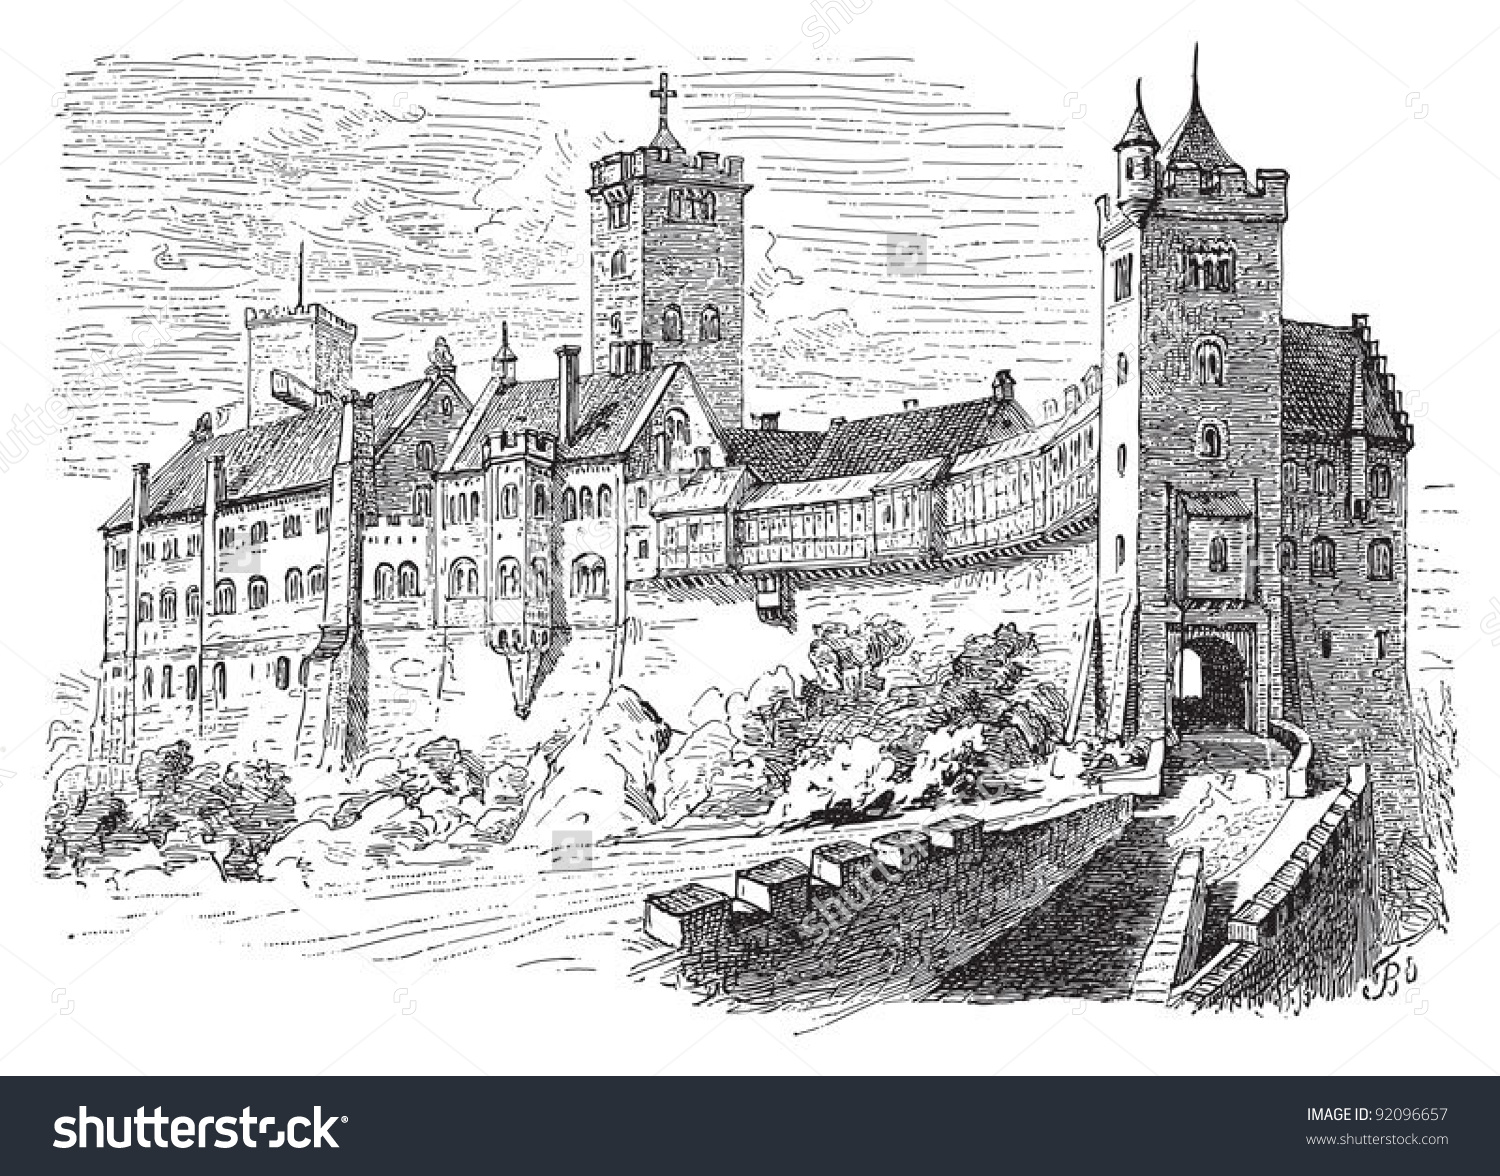 Castle Wartburg Eisenach Germany Vintage Illustration Stock Vector.